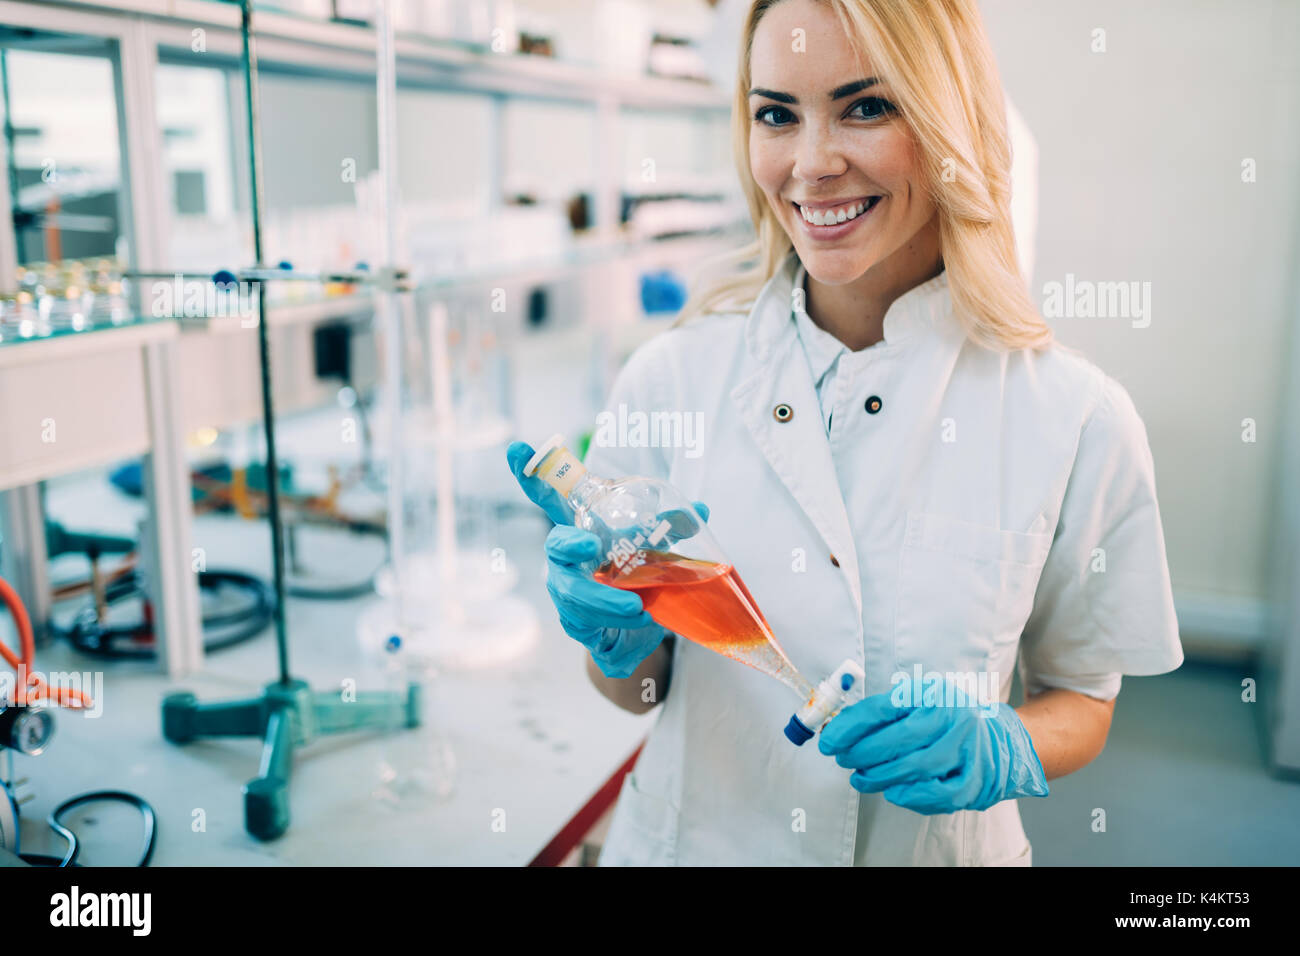 Attraktive Student der Chemie in Labor Stockbild